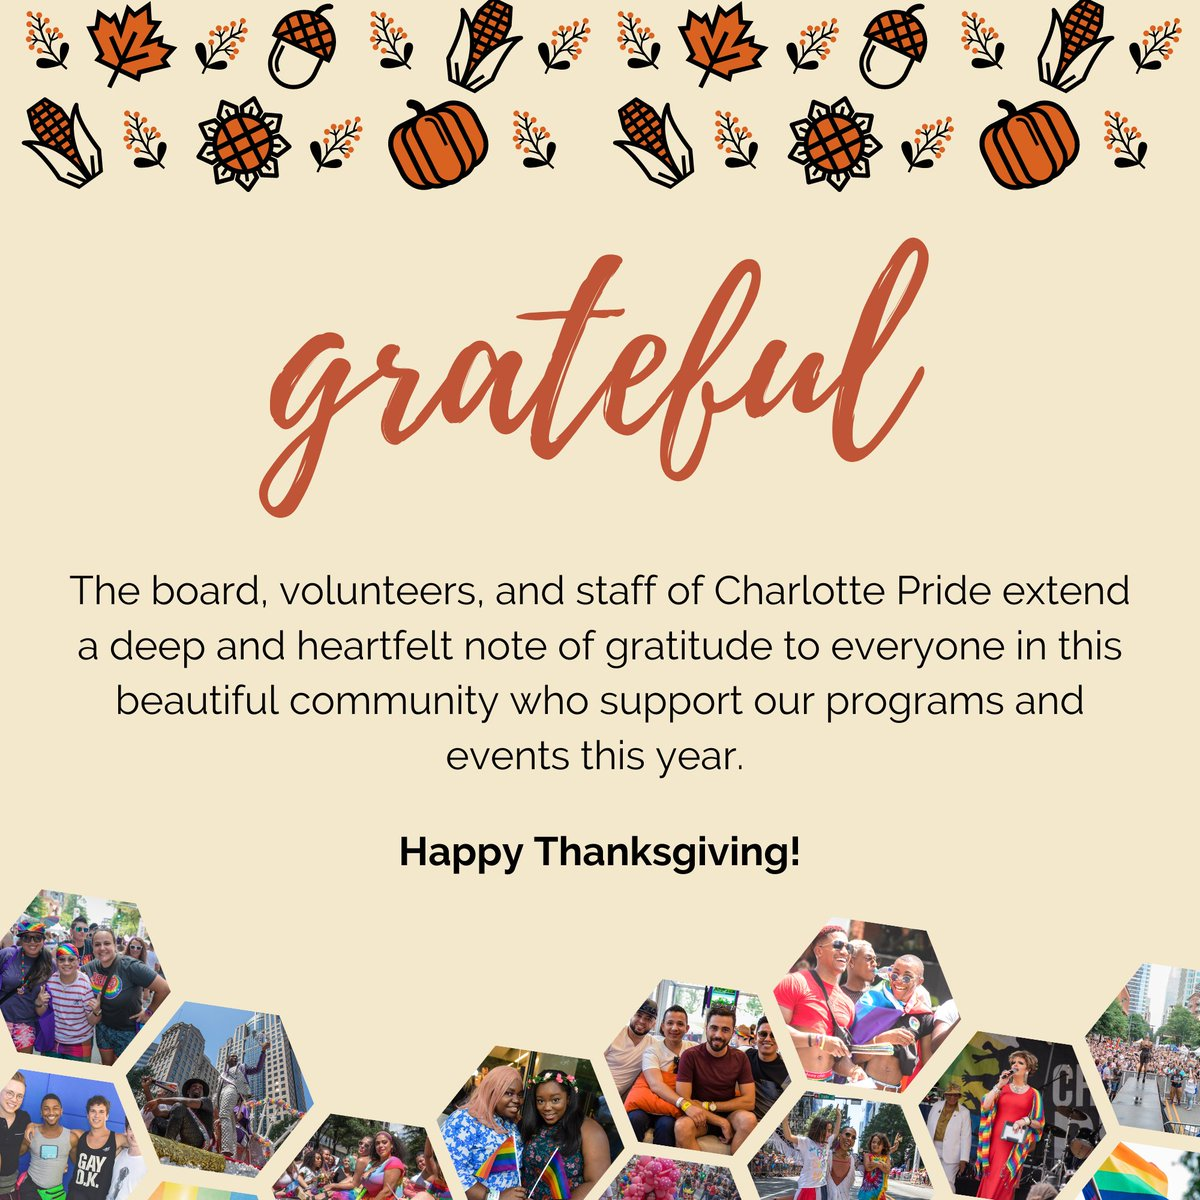 Happy Thanksgiving! The board, volunteers, and staff of Charlotte Pride extend a deep and heartfelt note of gratitude to everyone in this beautiful community who support our programs and events this year. #grateful